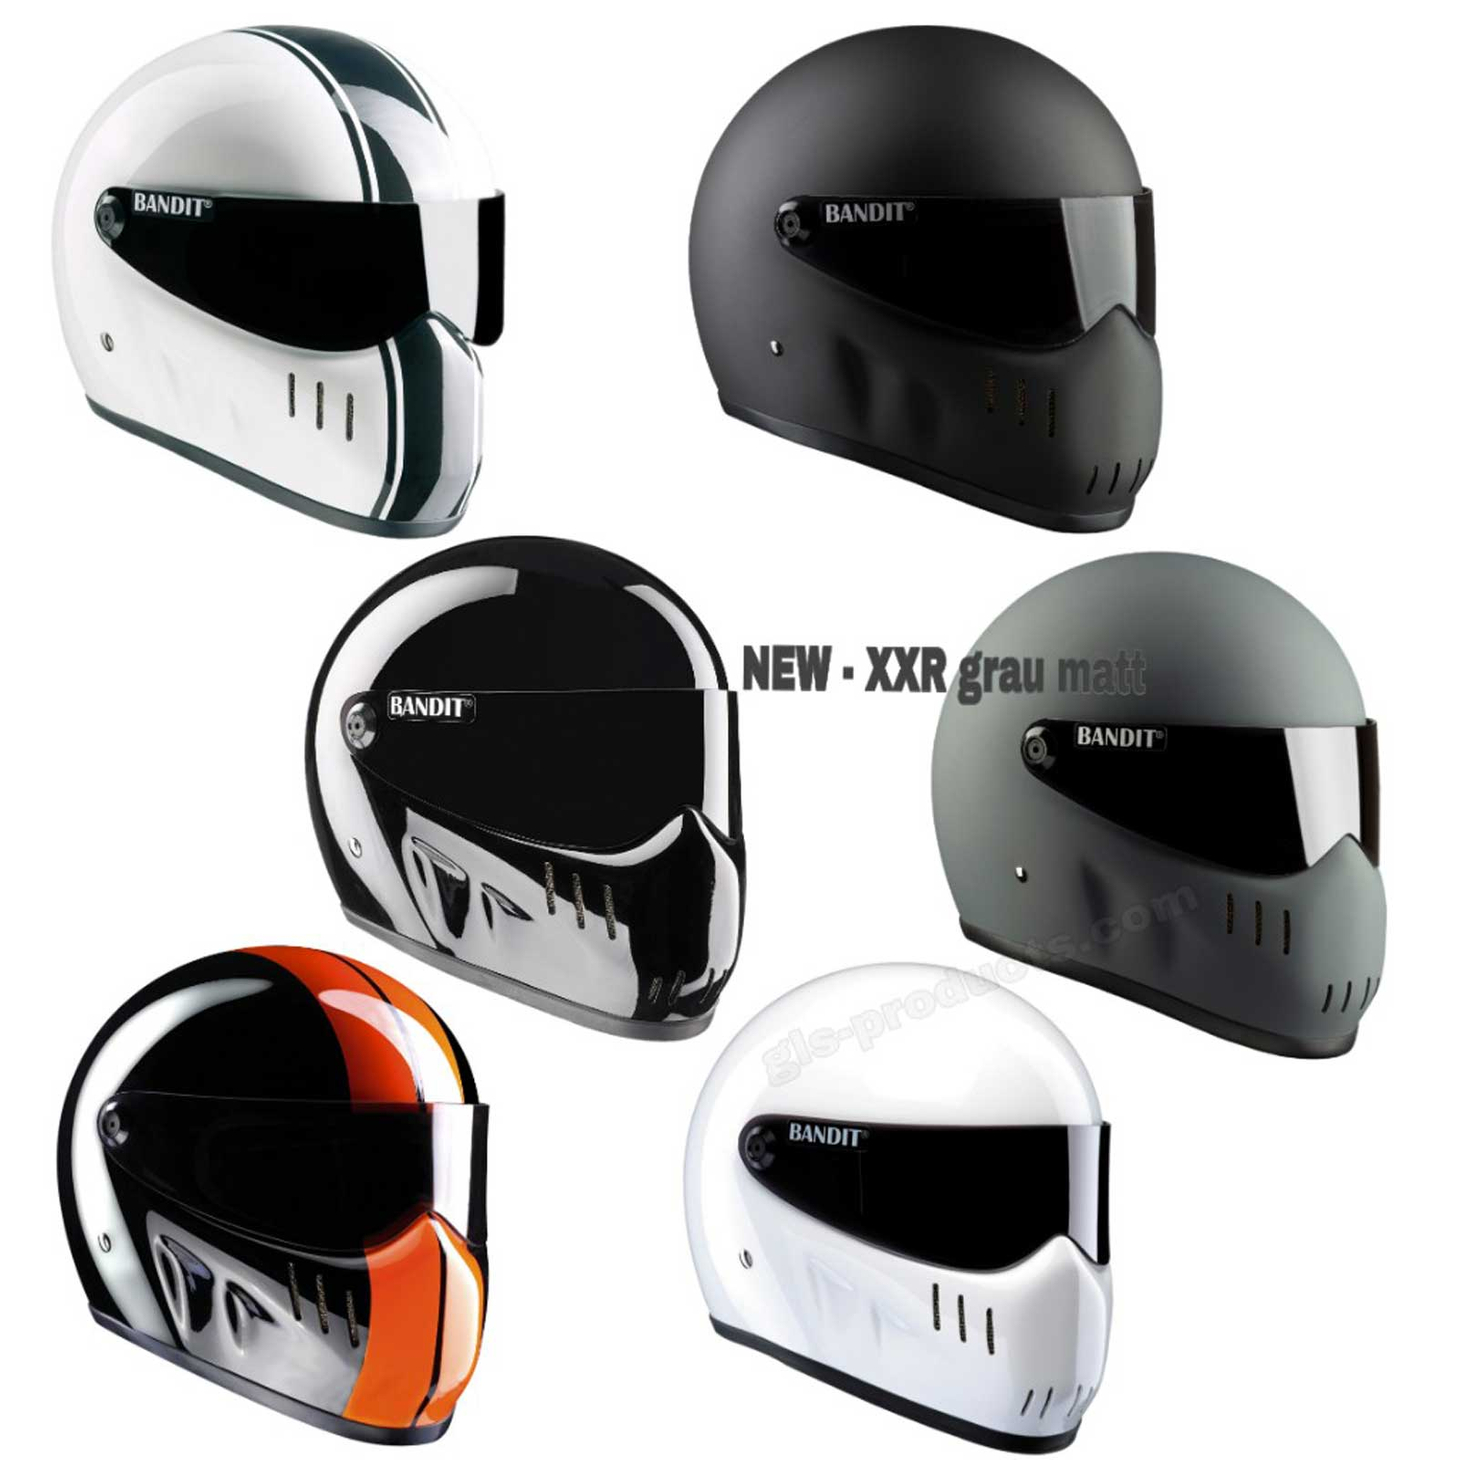 Bandit - XXR - New Motorcycle Helmet - for Streetfighter, Mad Max